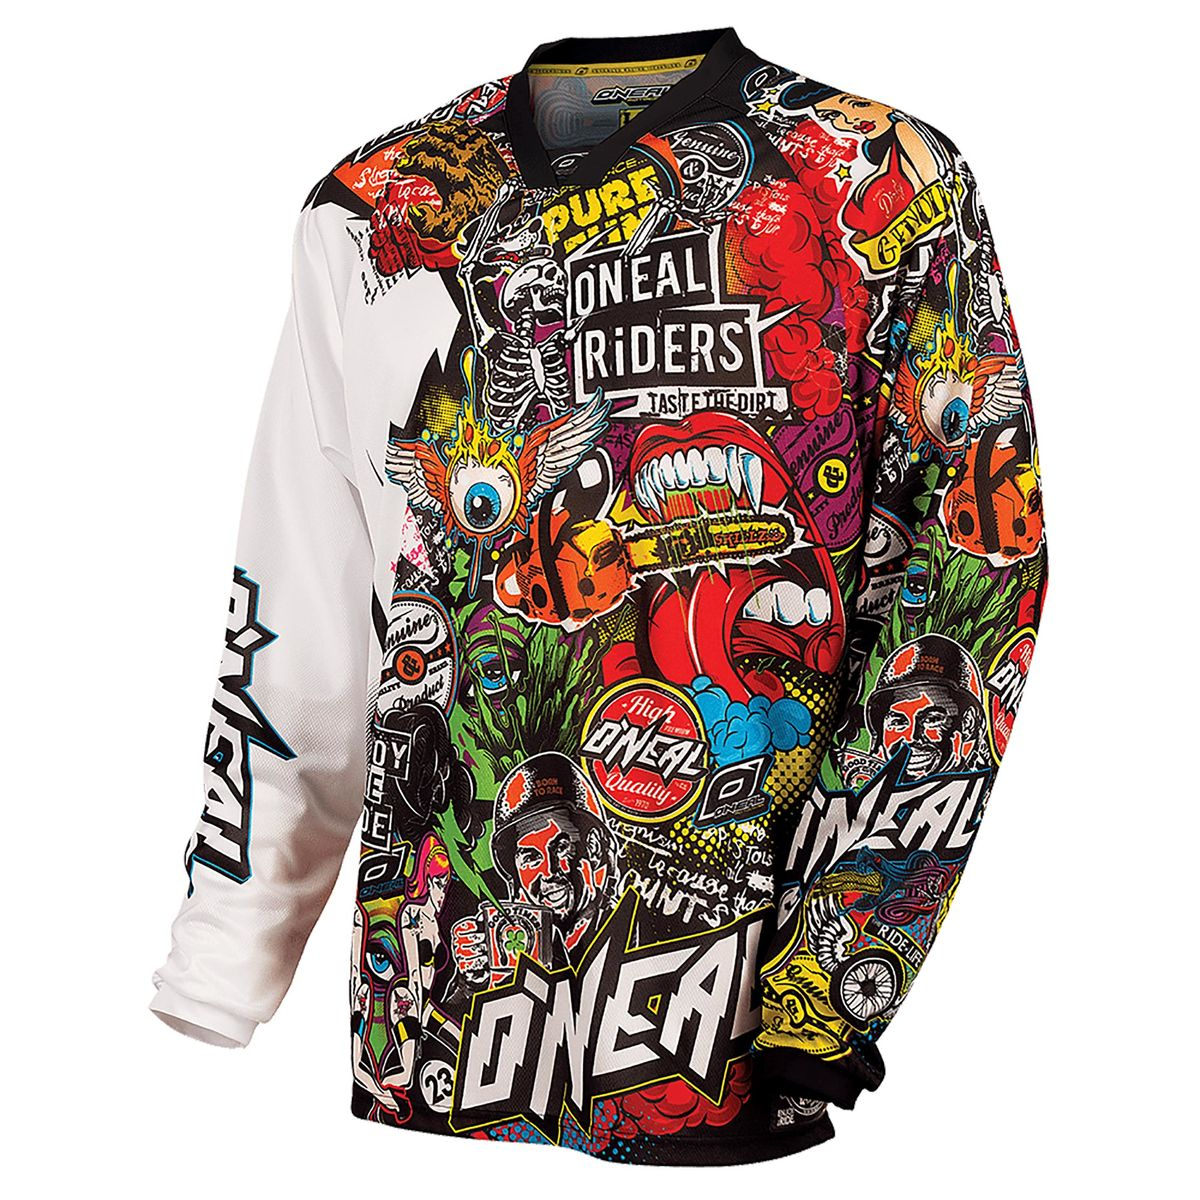 MAYHEM LITE bike shirt